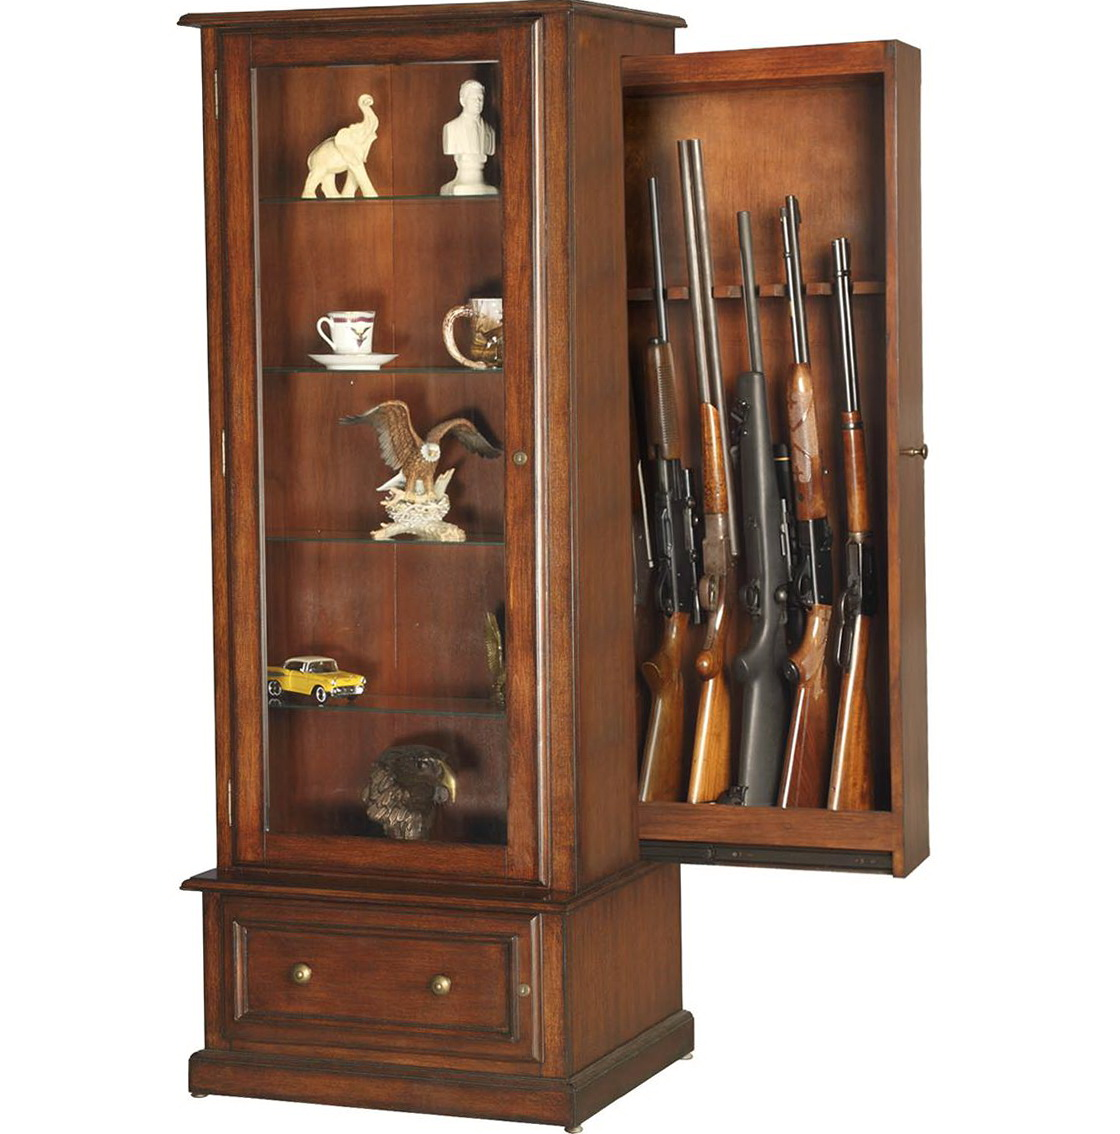 Homemade Gun Cabinet Plans